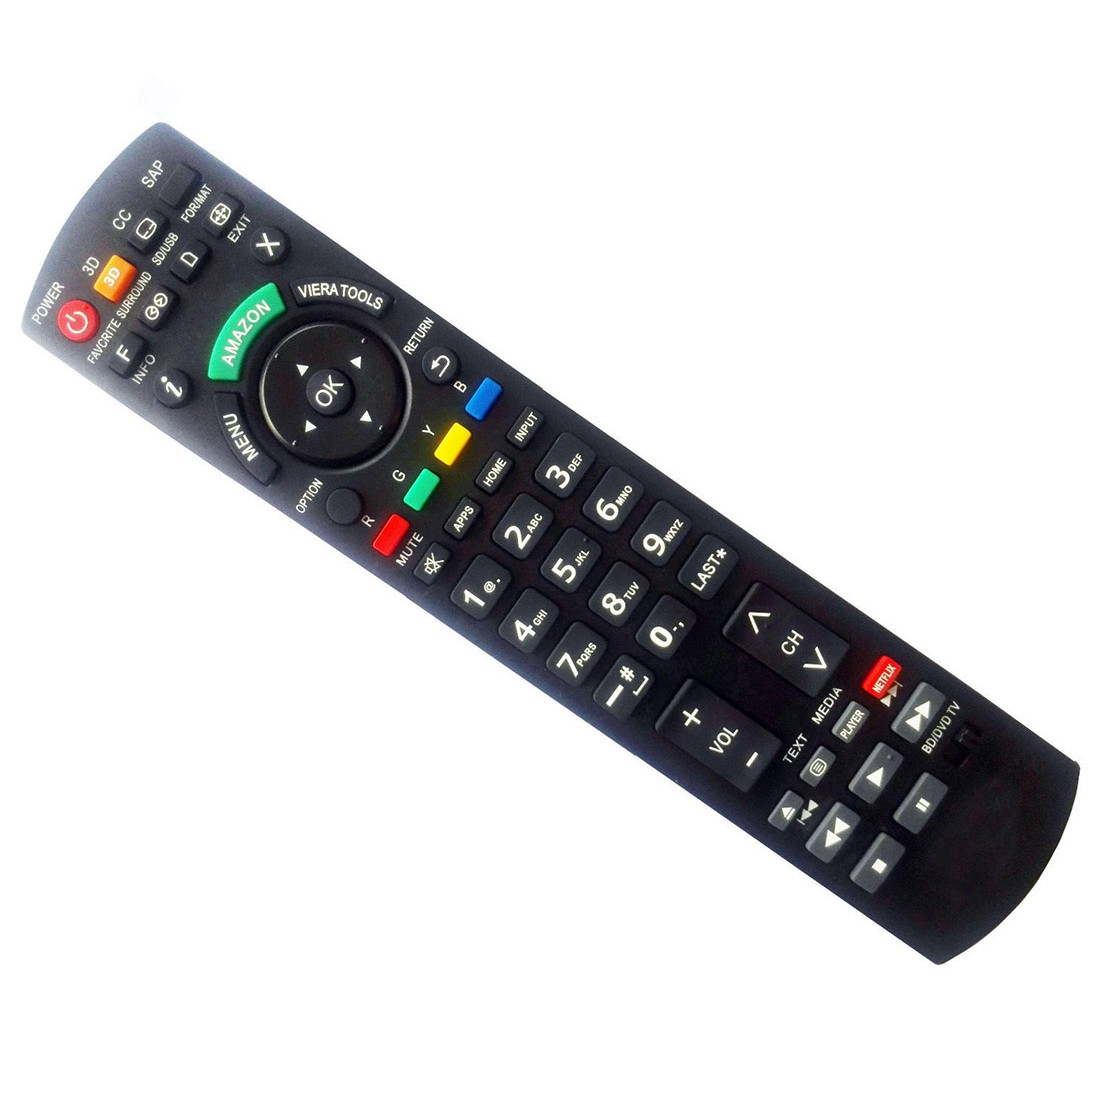 NEW TV Universal Remote control For N2QAYB000570 N2QAYB000703 N2QAYB000706